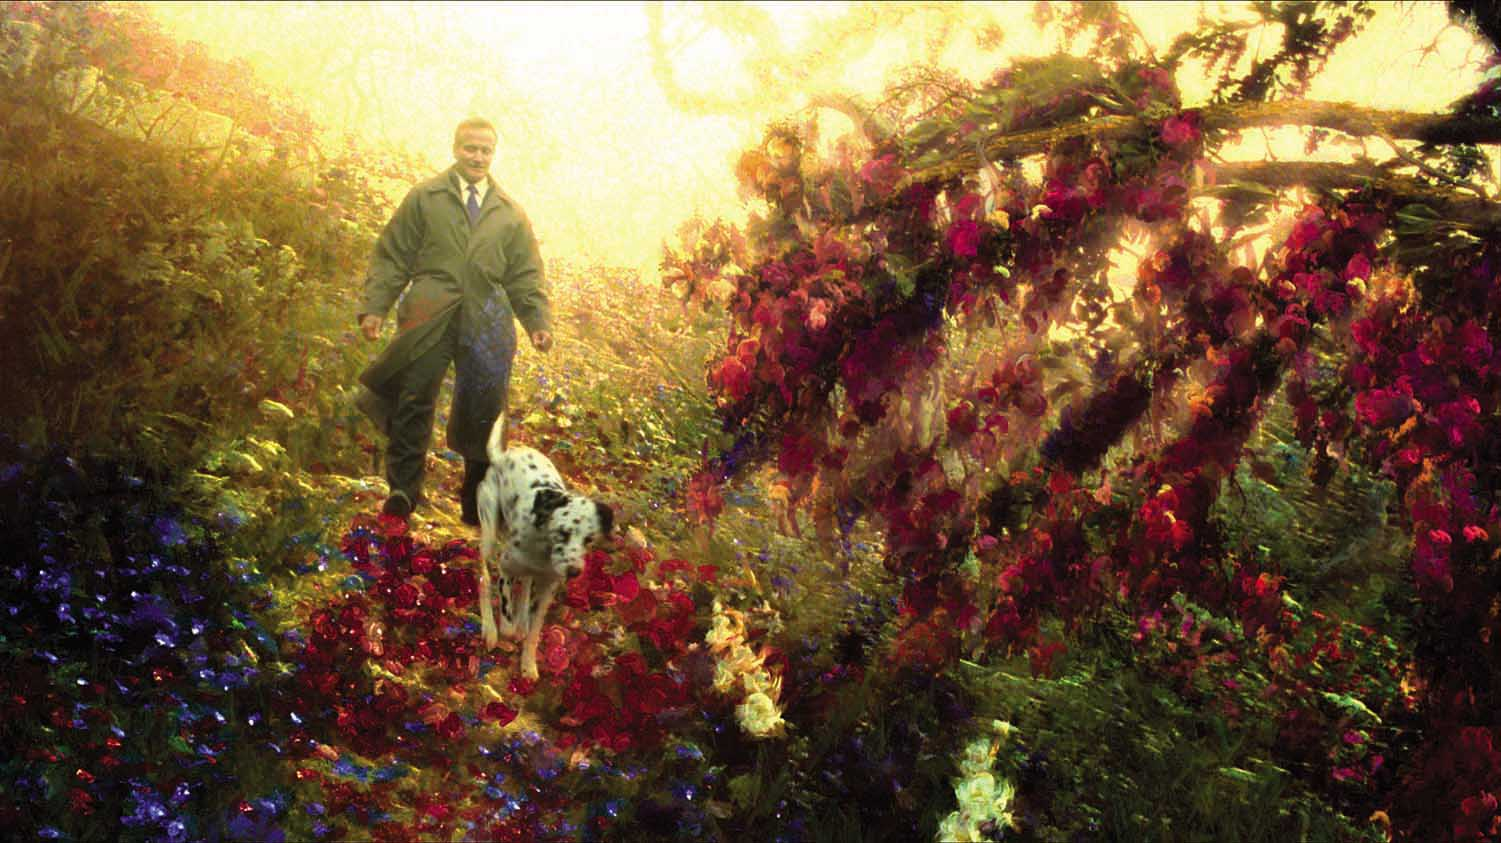 Robin Williams walks through the landscape of an oil painting come to life in What Dreams May Come (1998)